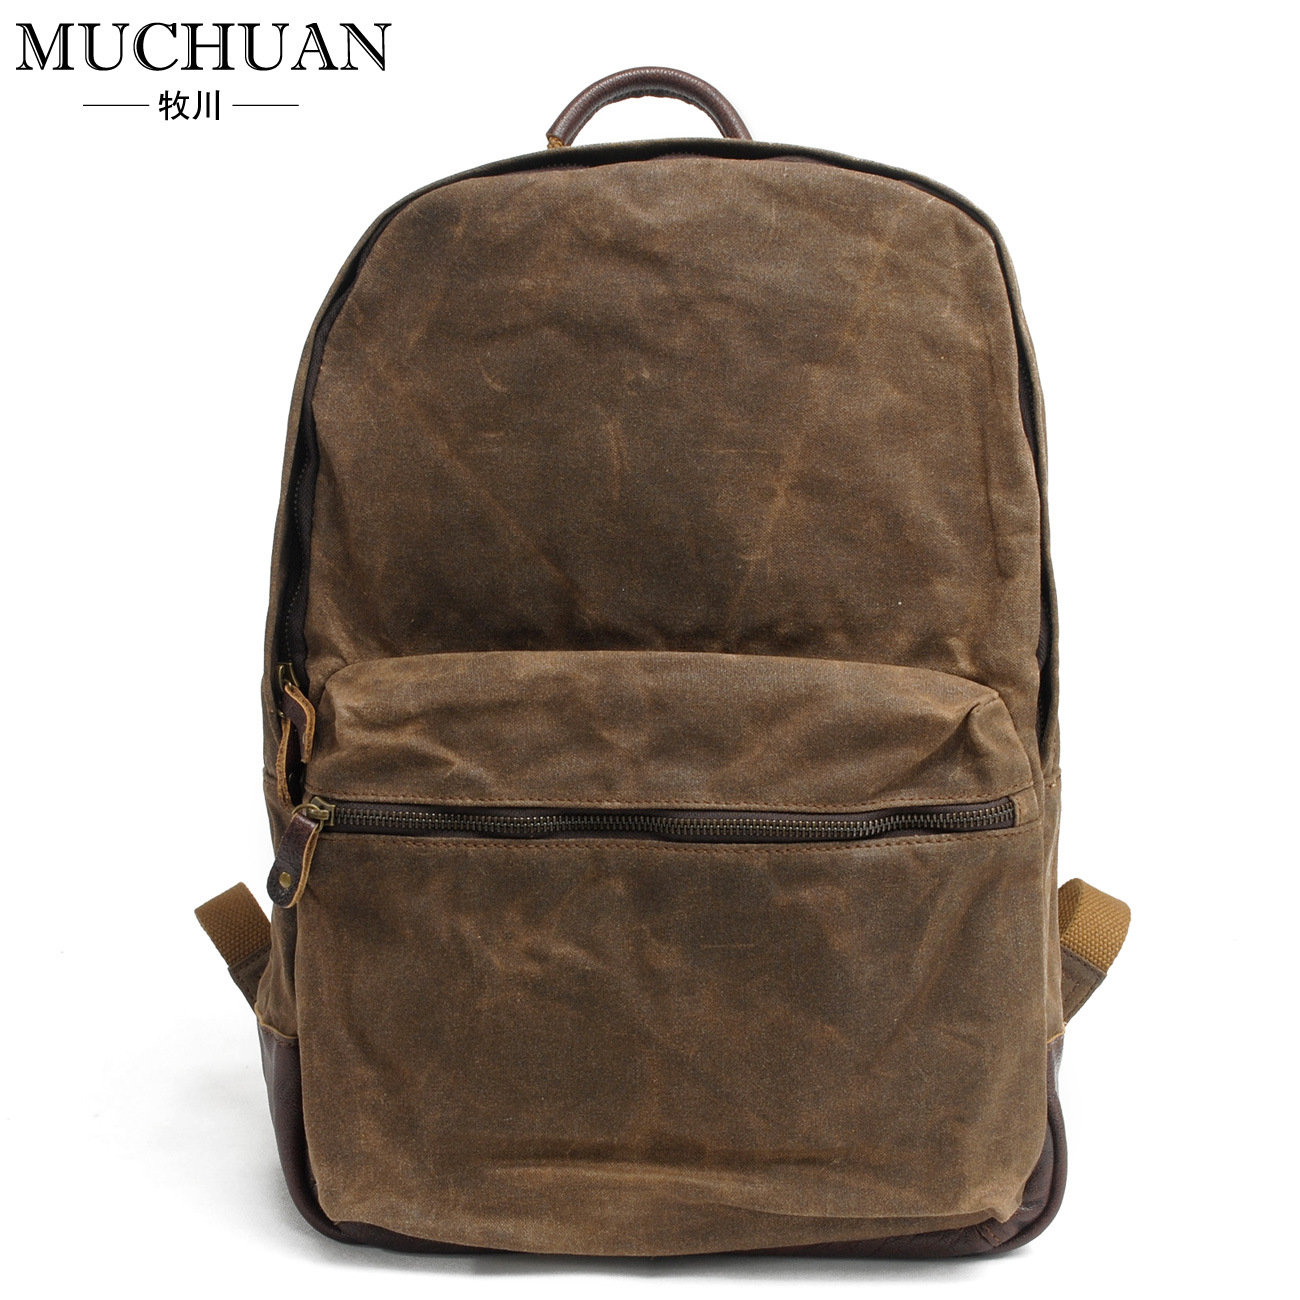 где купить Batik leisure backpack male money crazy horse leather backpack bag waterproof tide restoring ancient ways is the canvas bag по лучшей цене